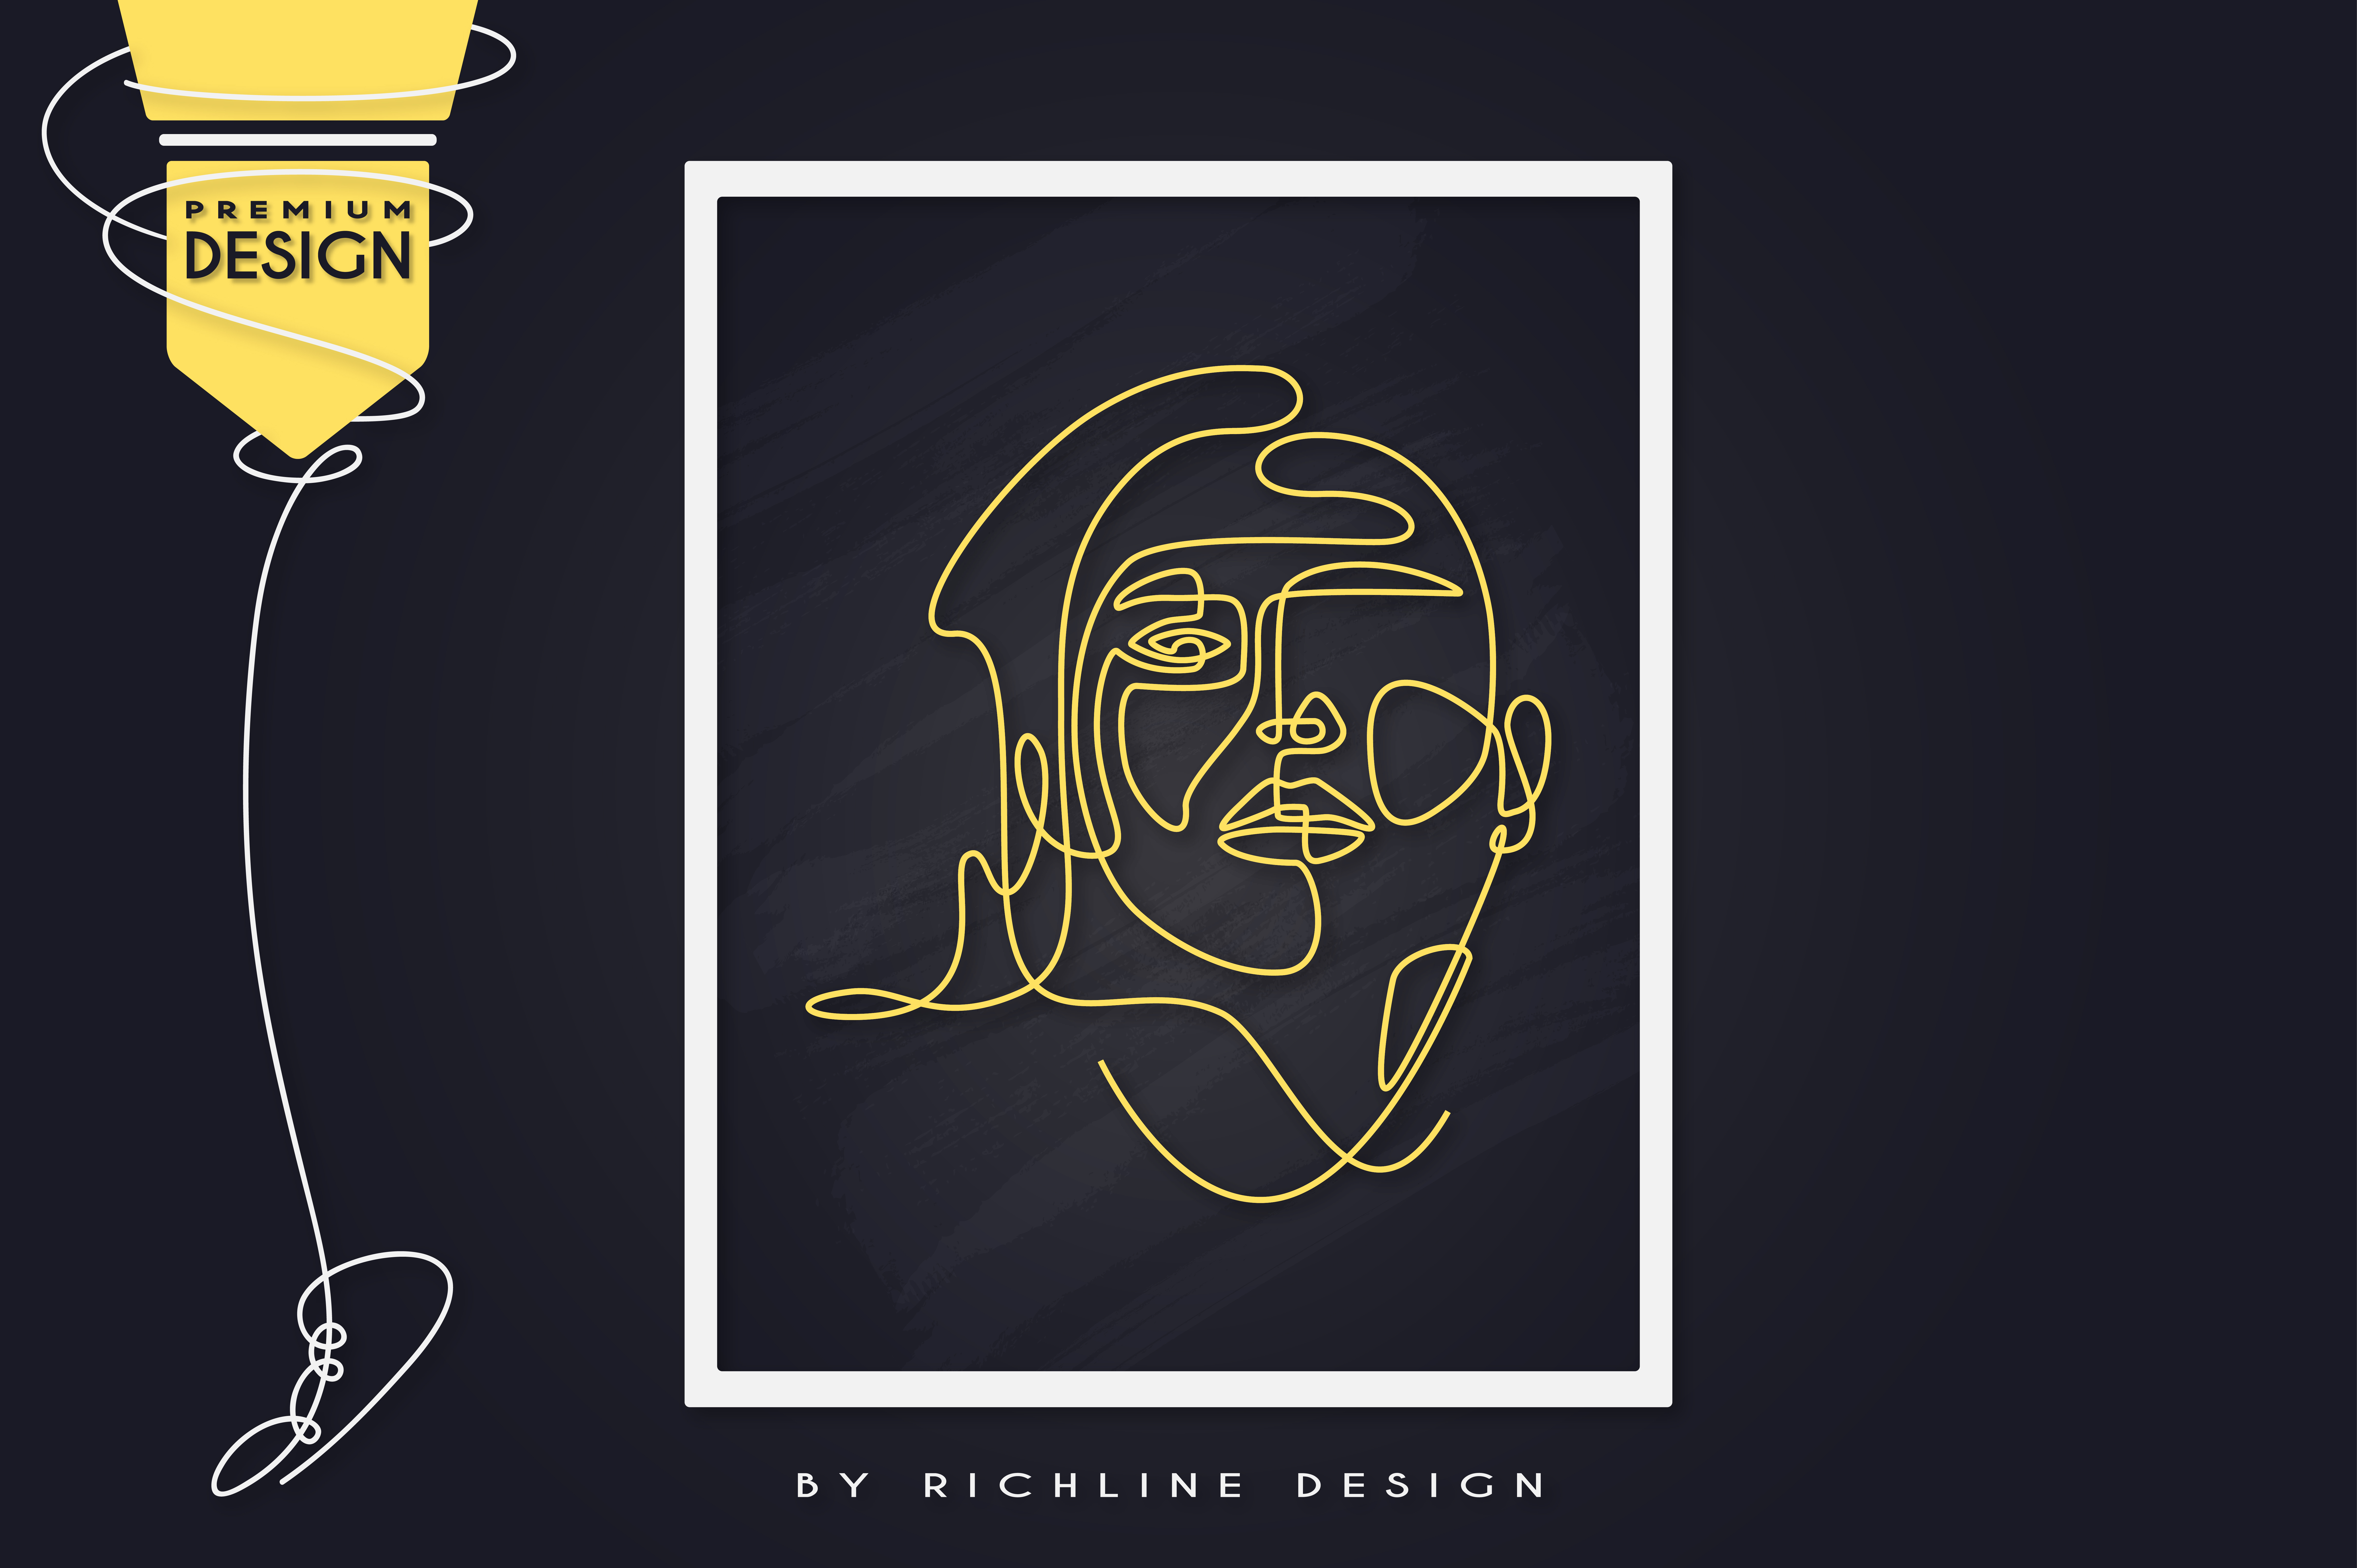 Download Free Taylor Swift Line Art Poster Graphic By Richline Design for Cricut Explore, Silhouette and other cutting machines.